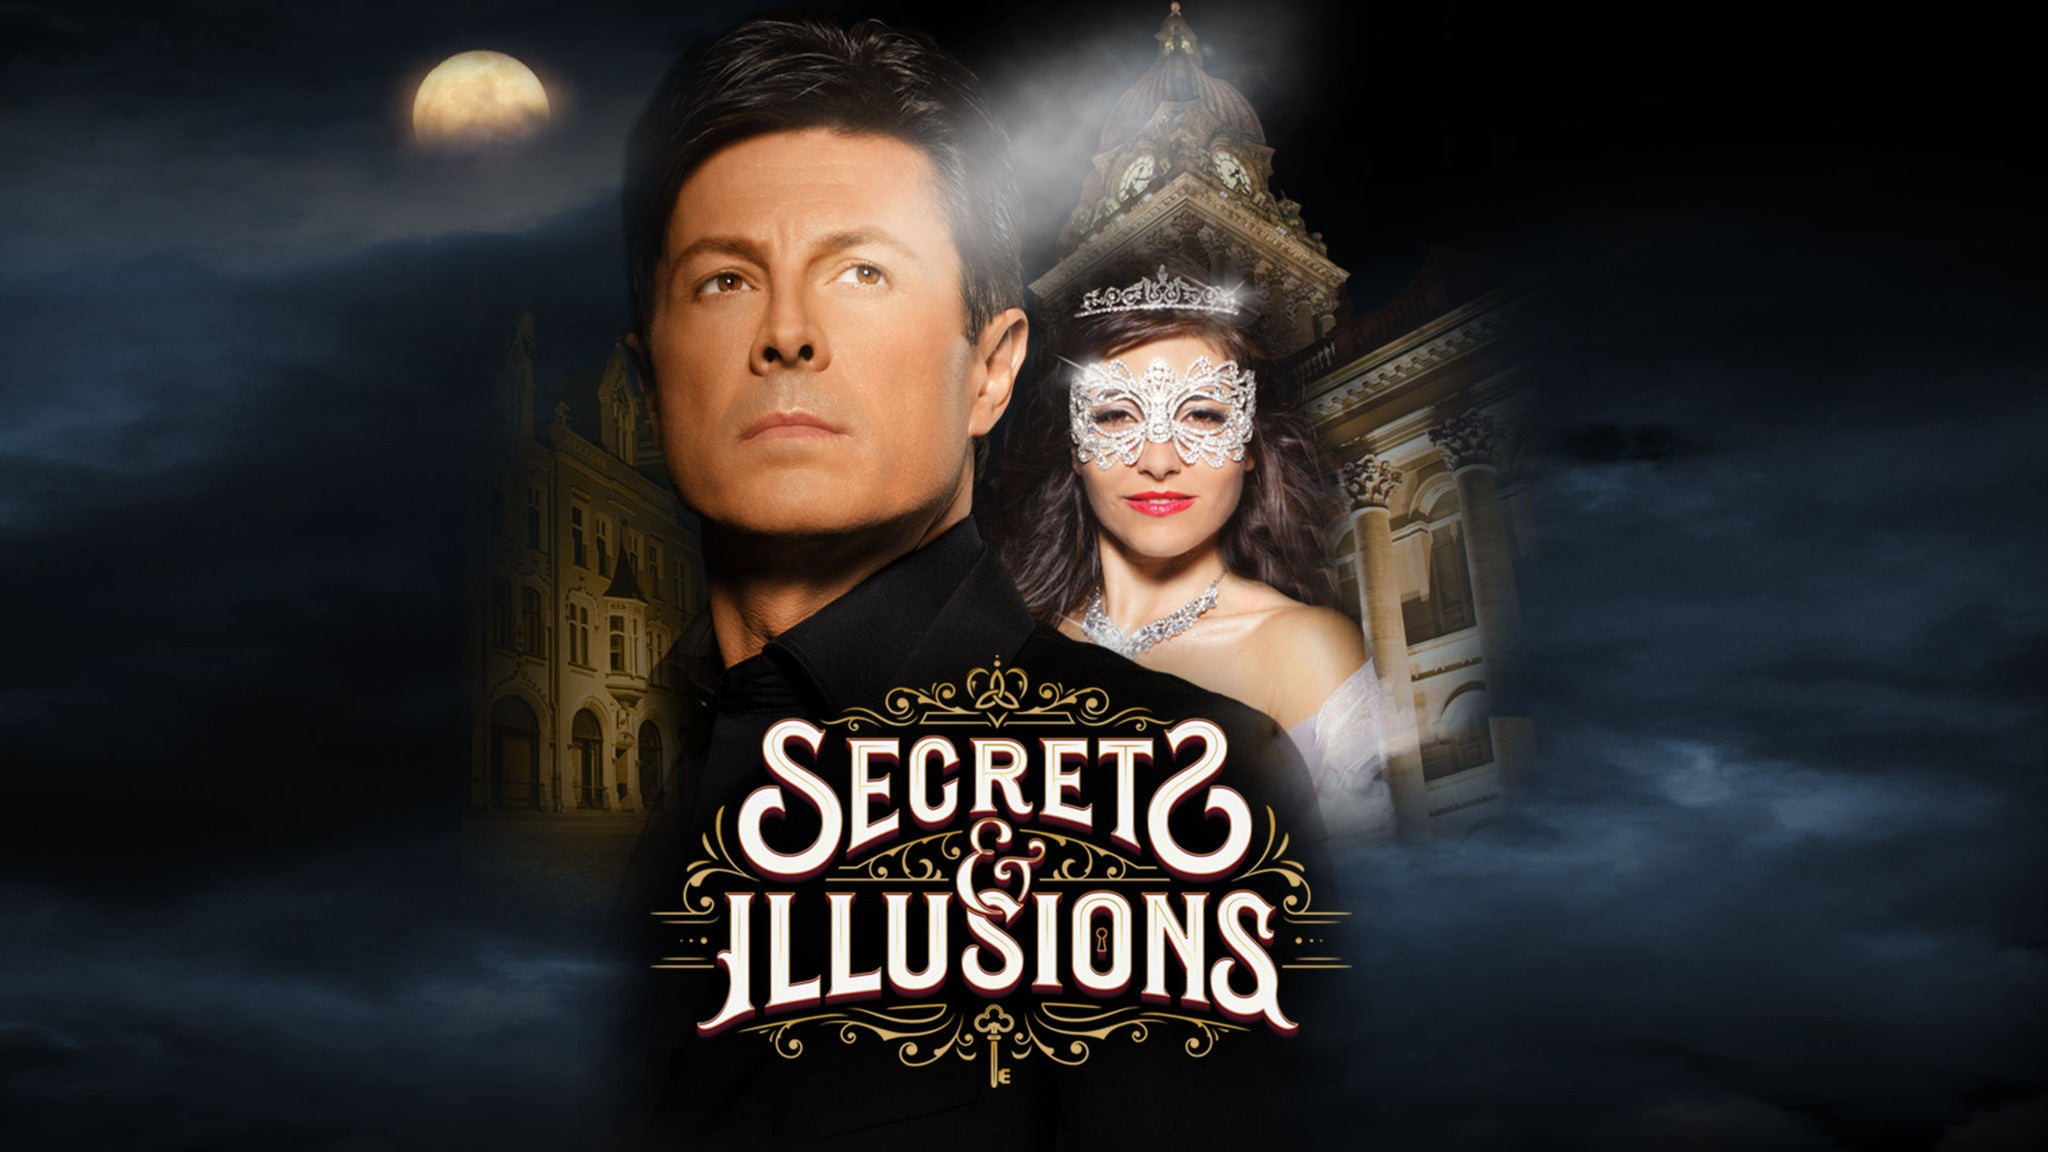 Main image for event titled Ivan Amodei Presents Secrets & Illusions